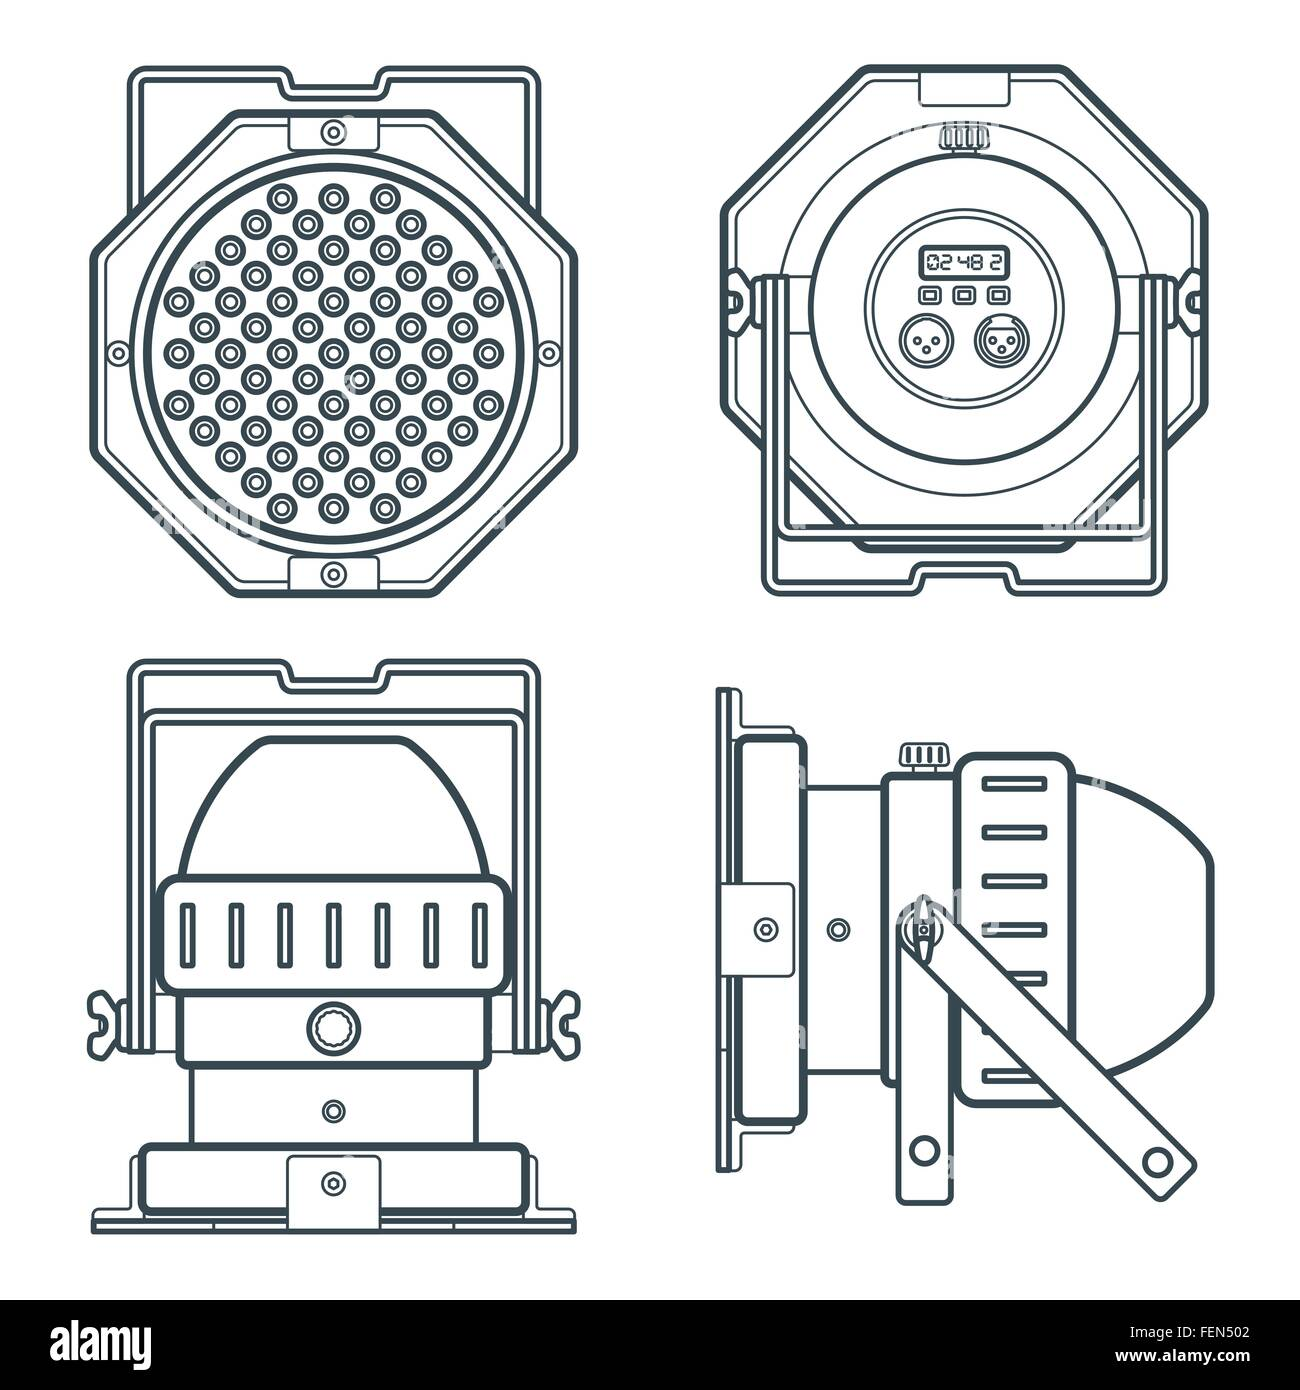 Stage Lights Cut Out Stock Images Pictures Alamy Theatre Lighting Diagram Vector Led Par Professional Projector Device Gray Outline Illustration Dark Background Image